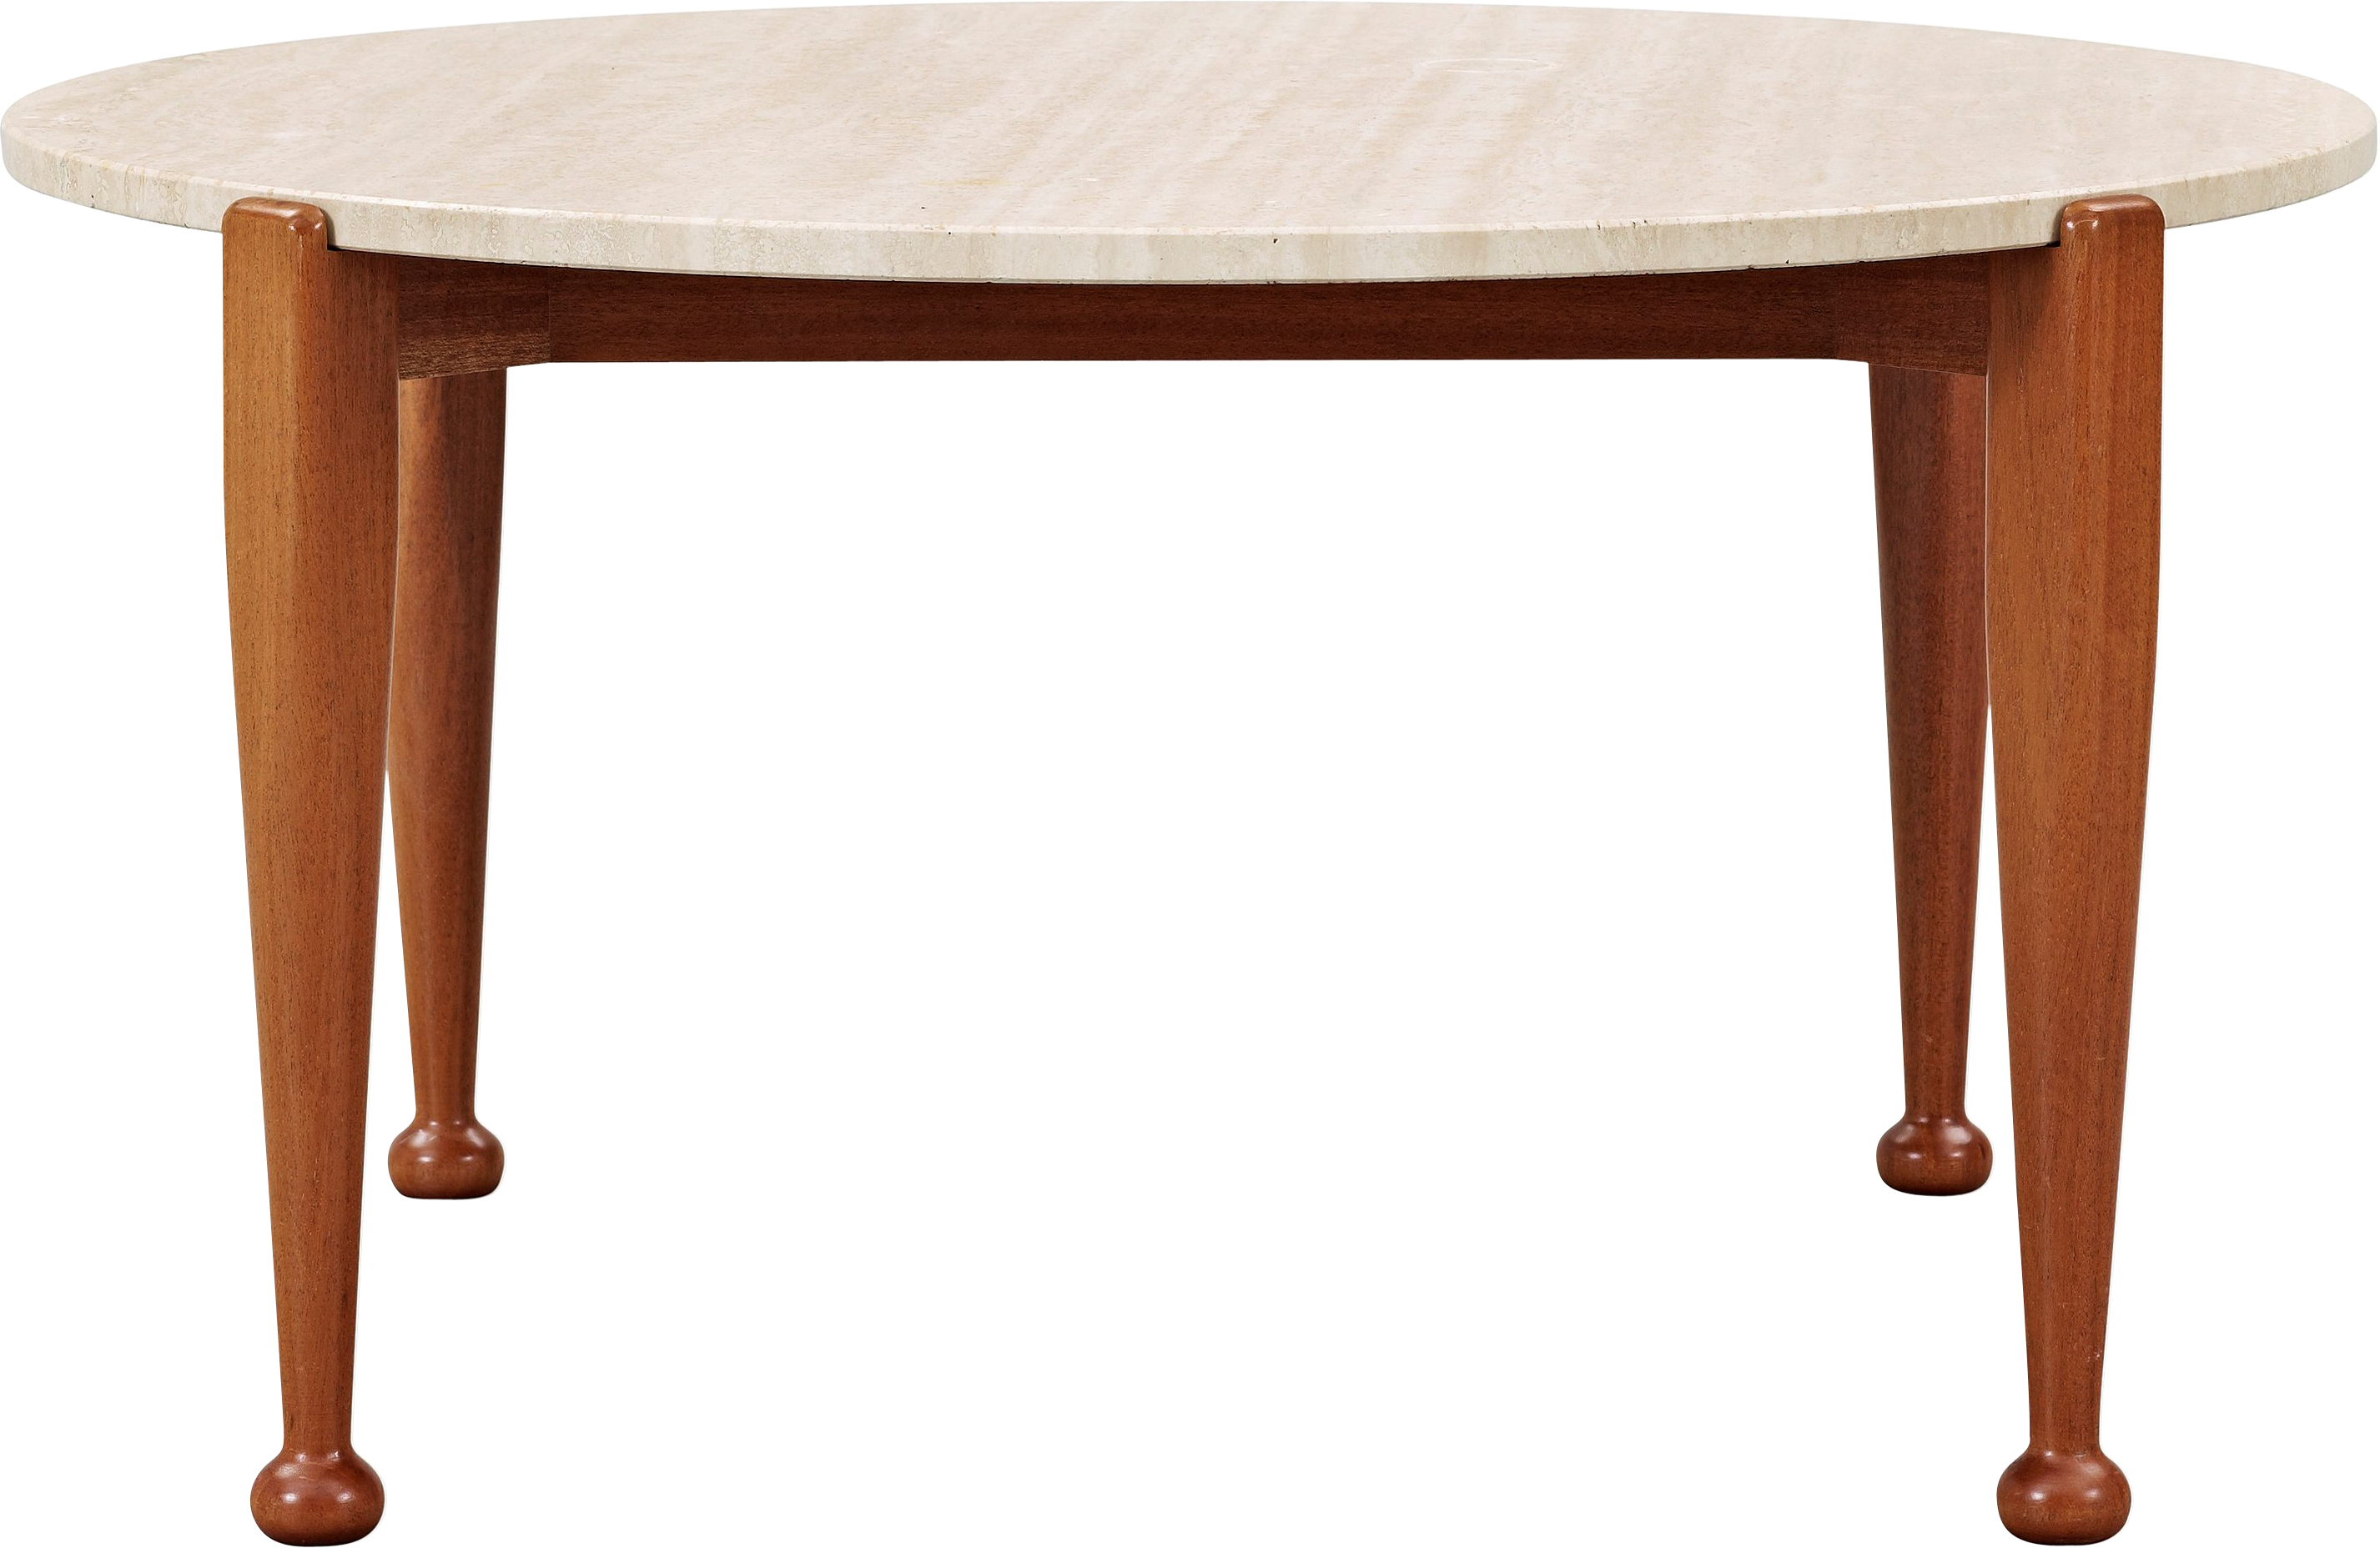 Wooden Table Png Image Minimalist Furniture Design Furniture Design Chair Furniture Design Living Room